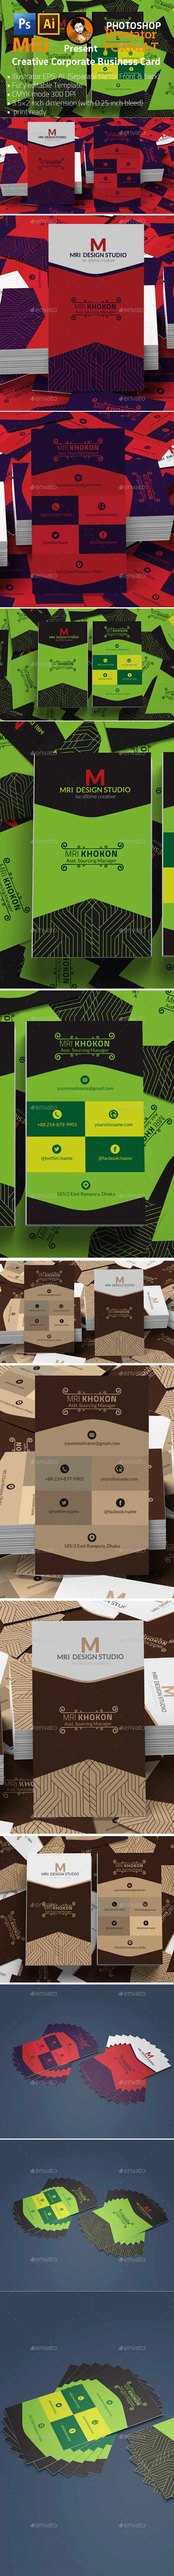 GraphicRiver Creative Corporate Business Card 11904960